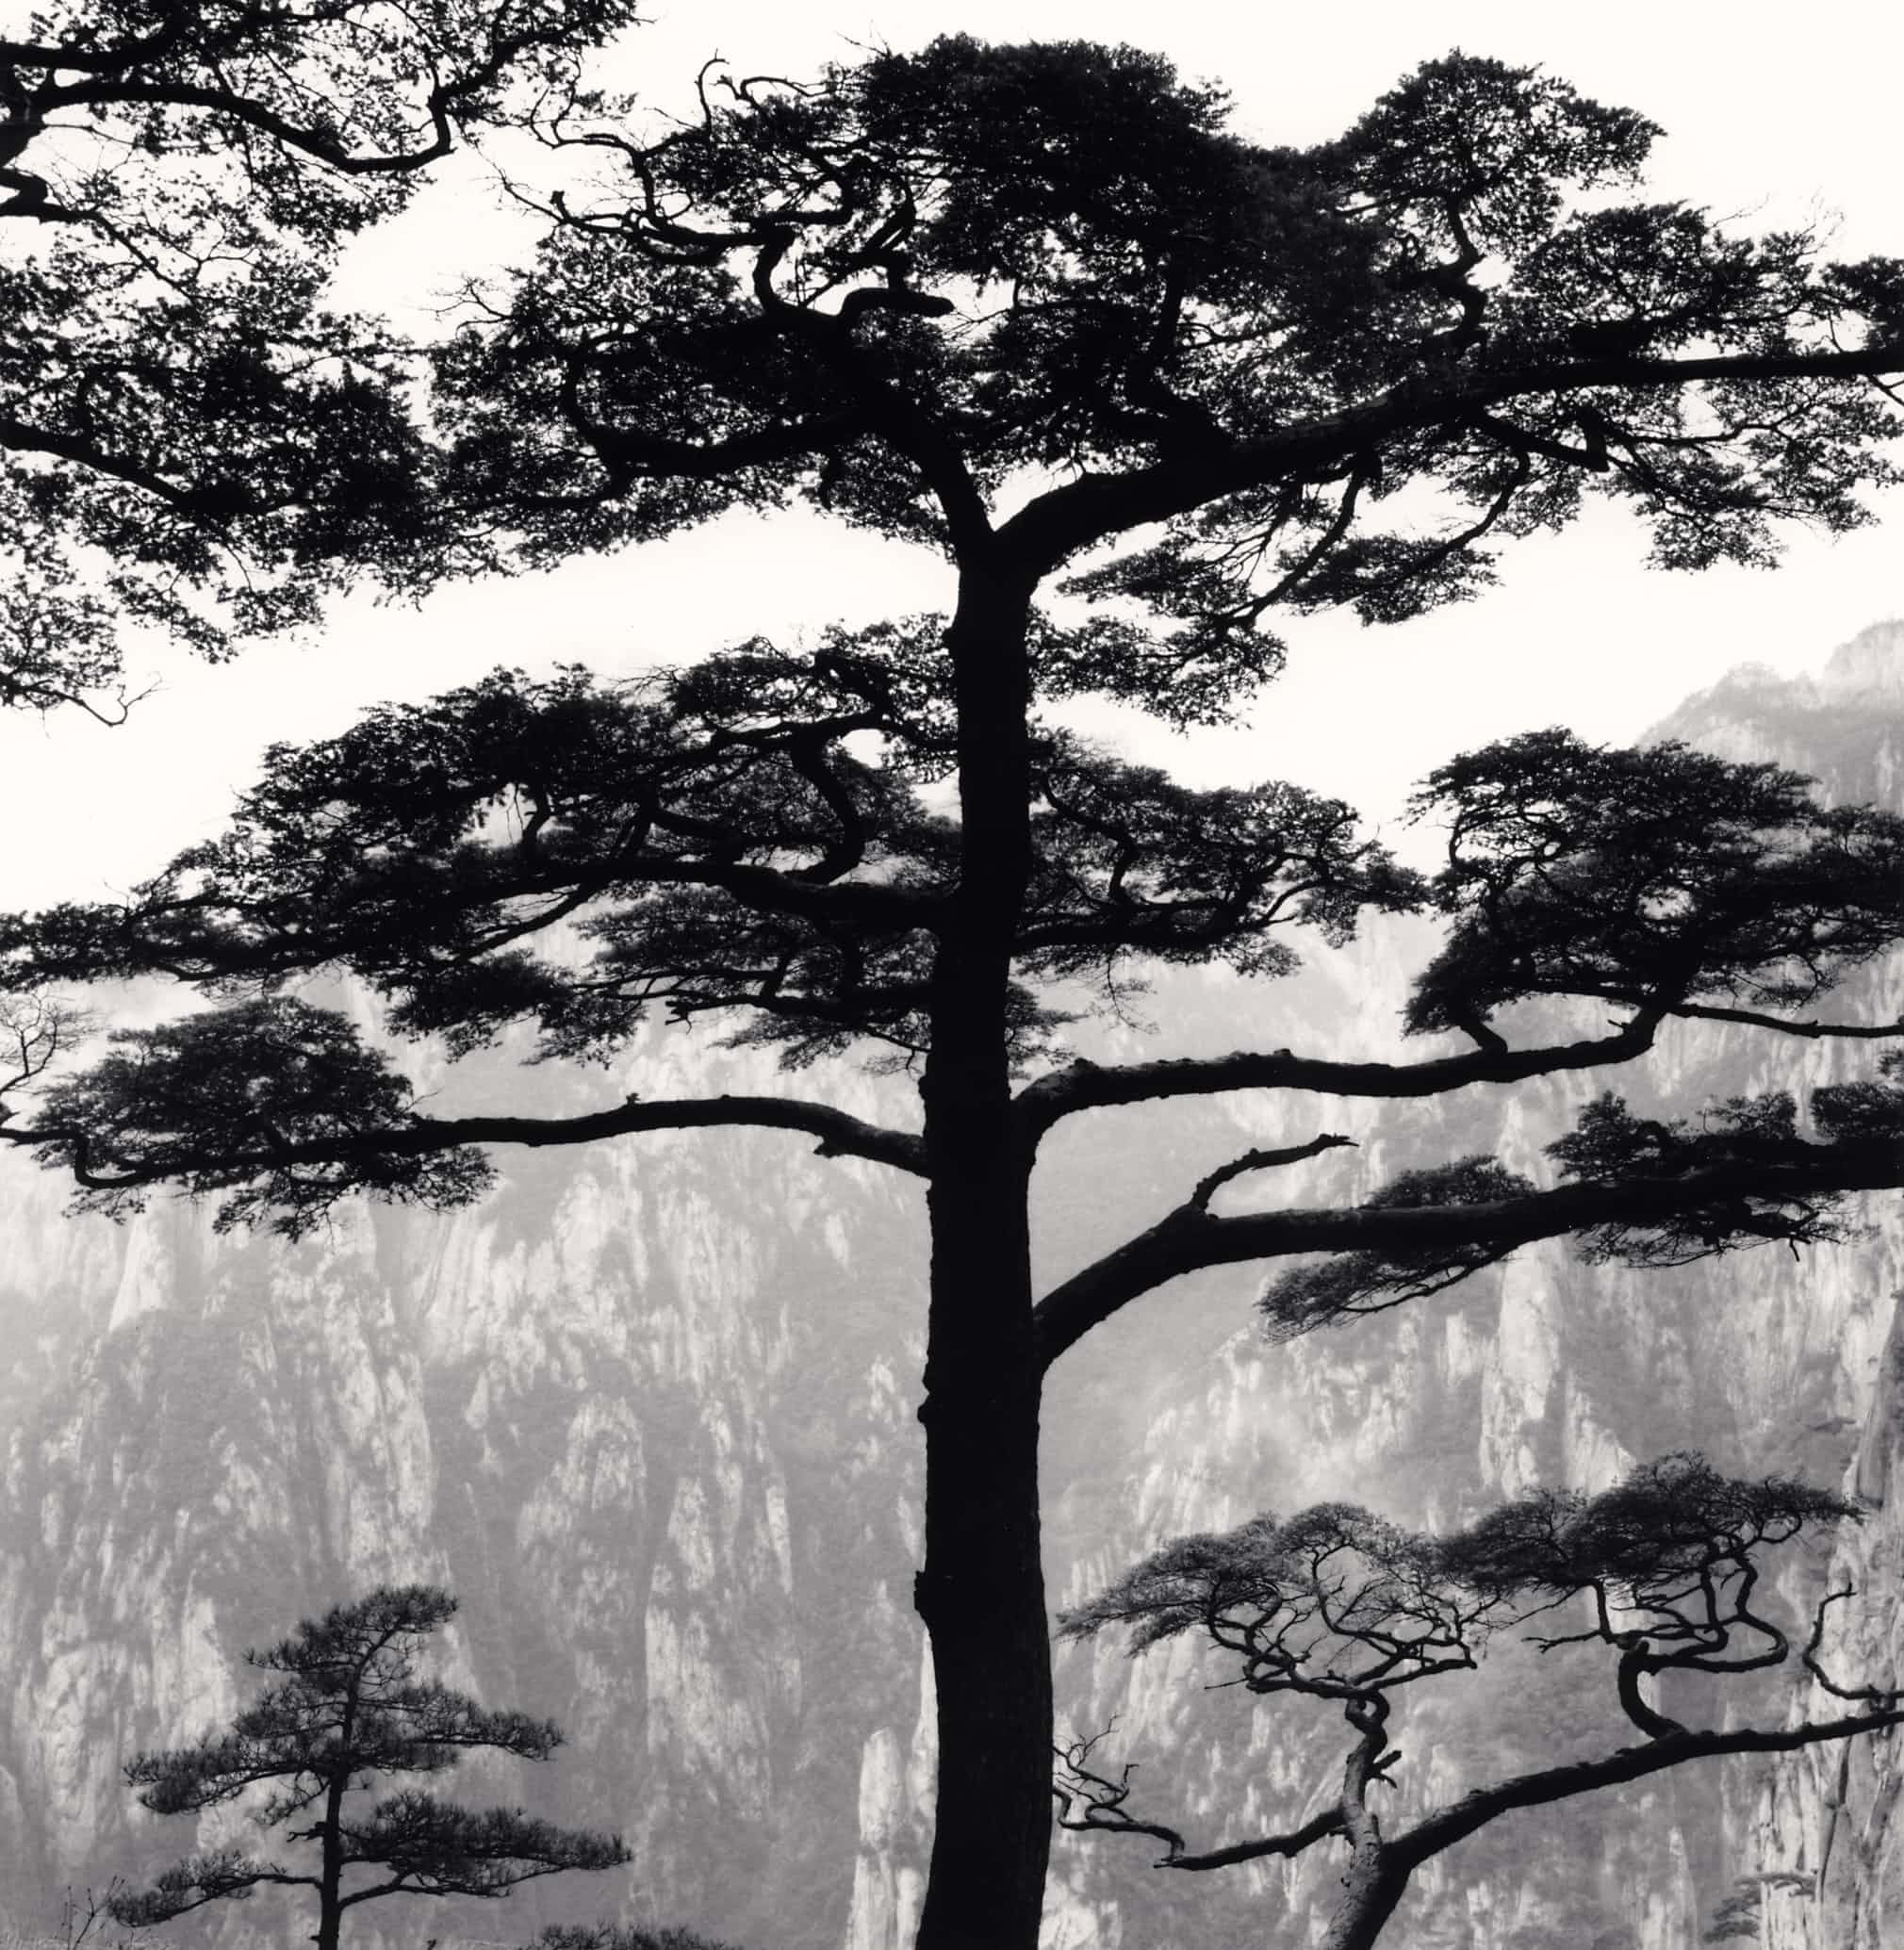 Timber! Michael Kenna's magical trees – in pictures